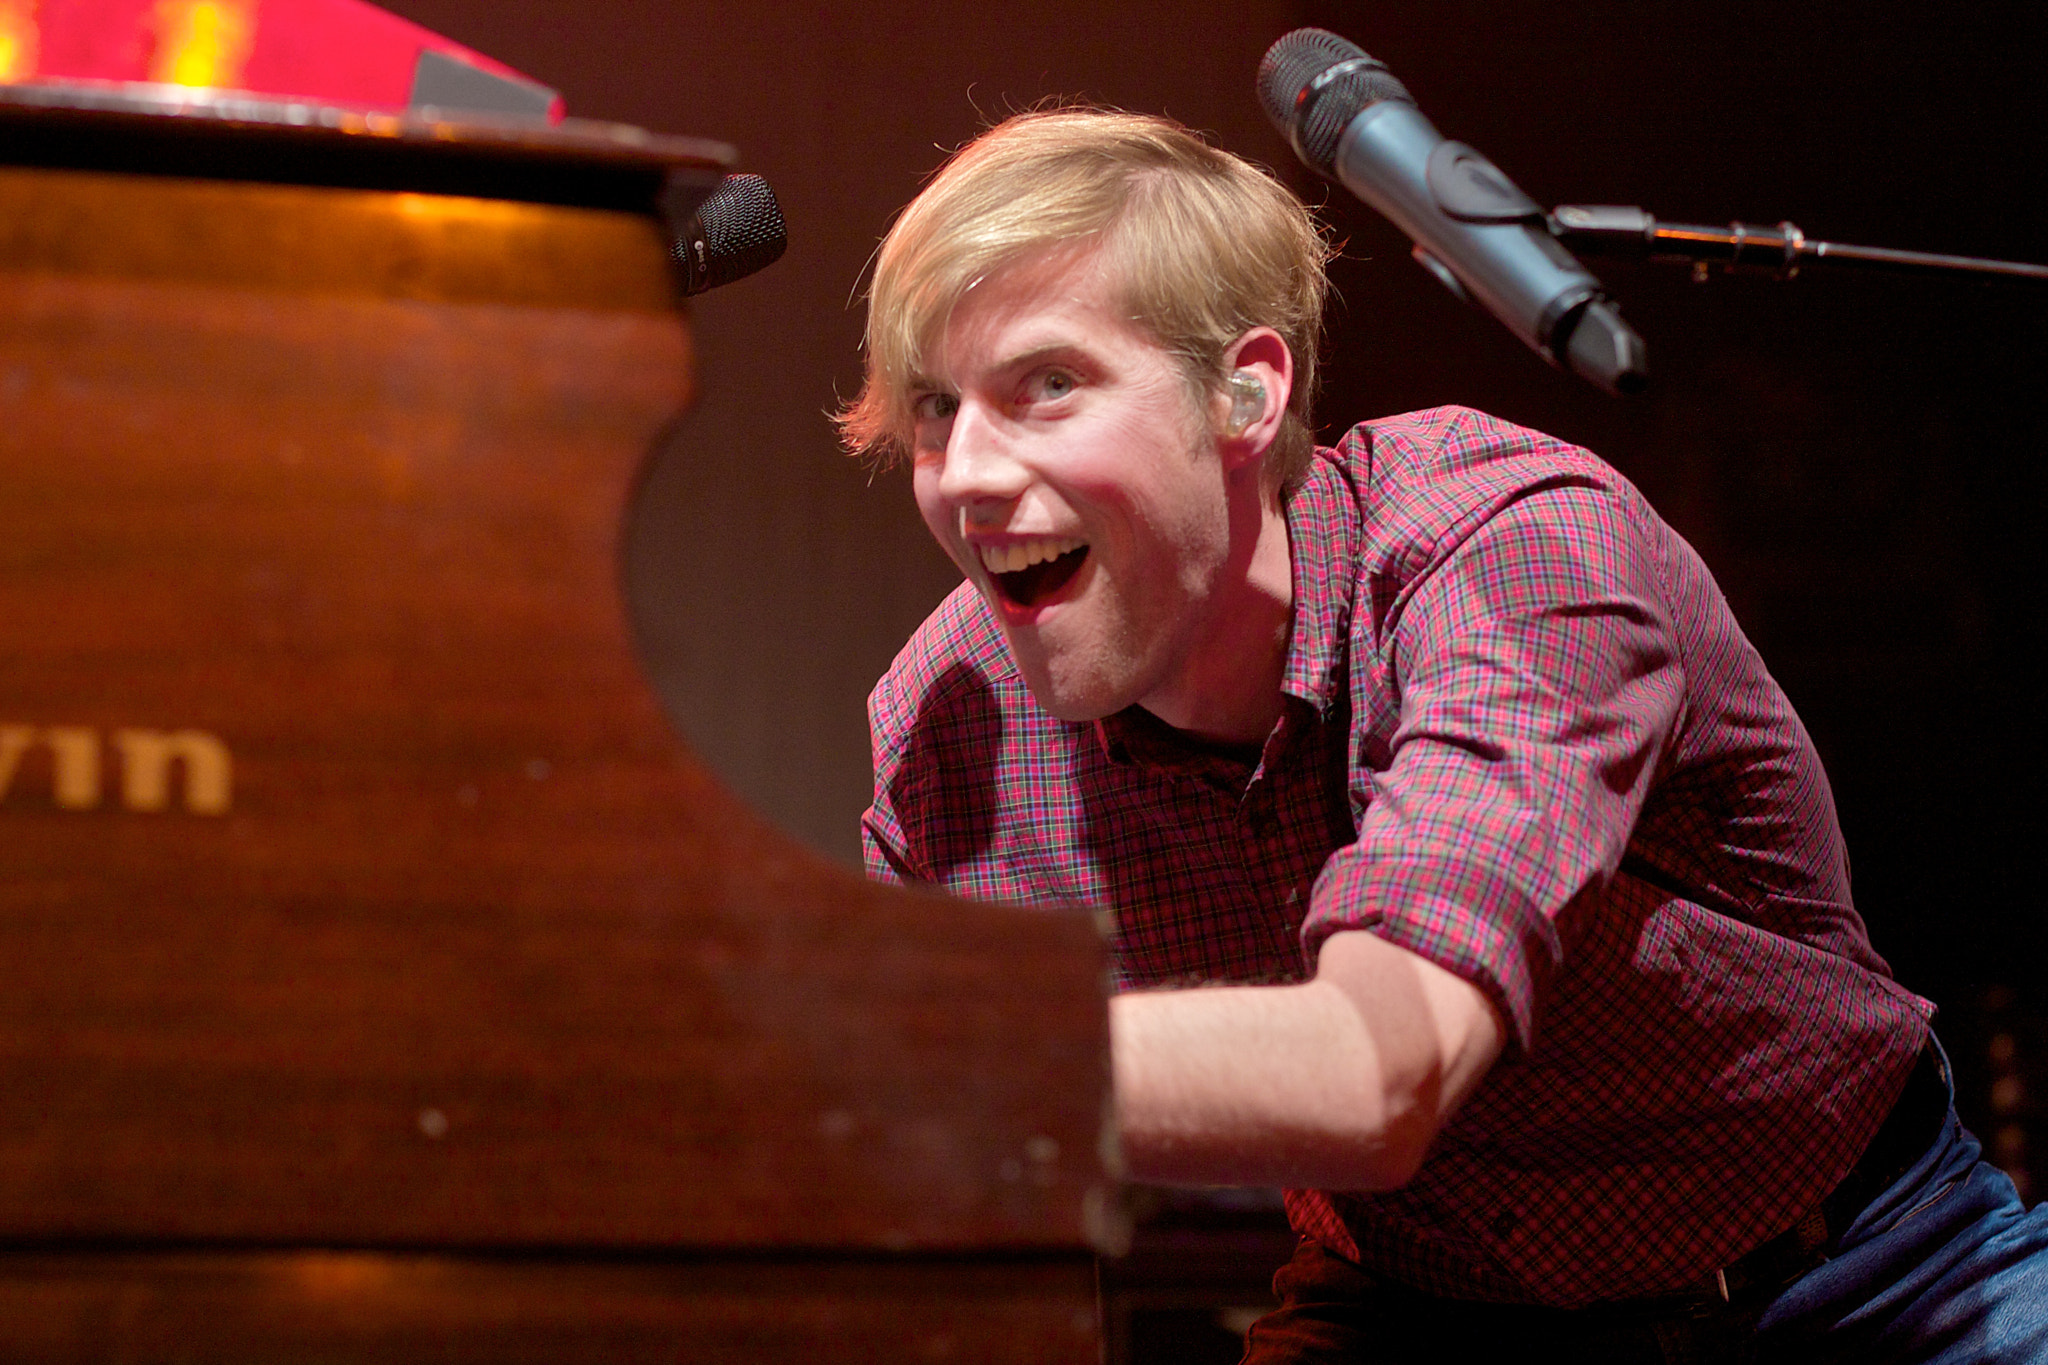 Photograph Jack's Mannequin by Jeff Jewiss on 500px